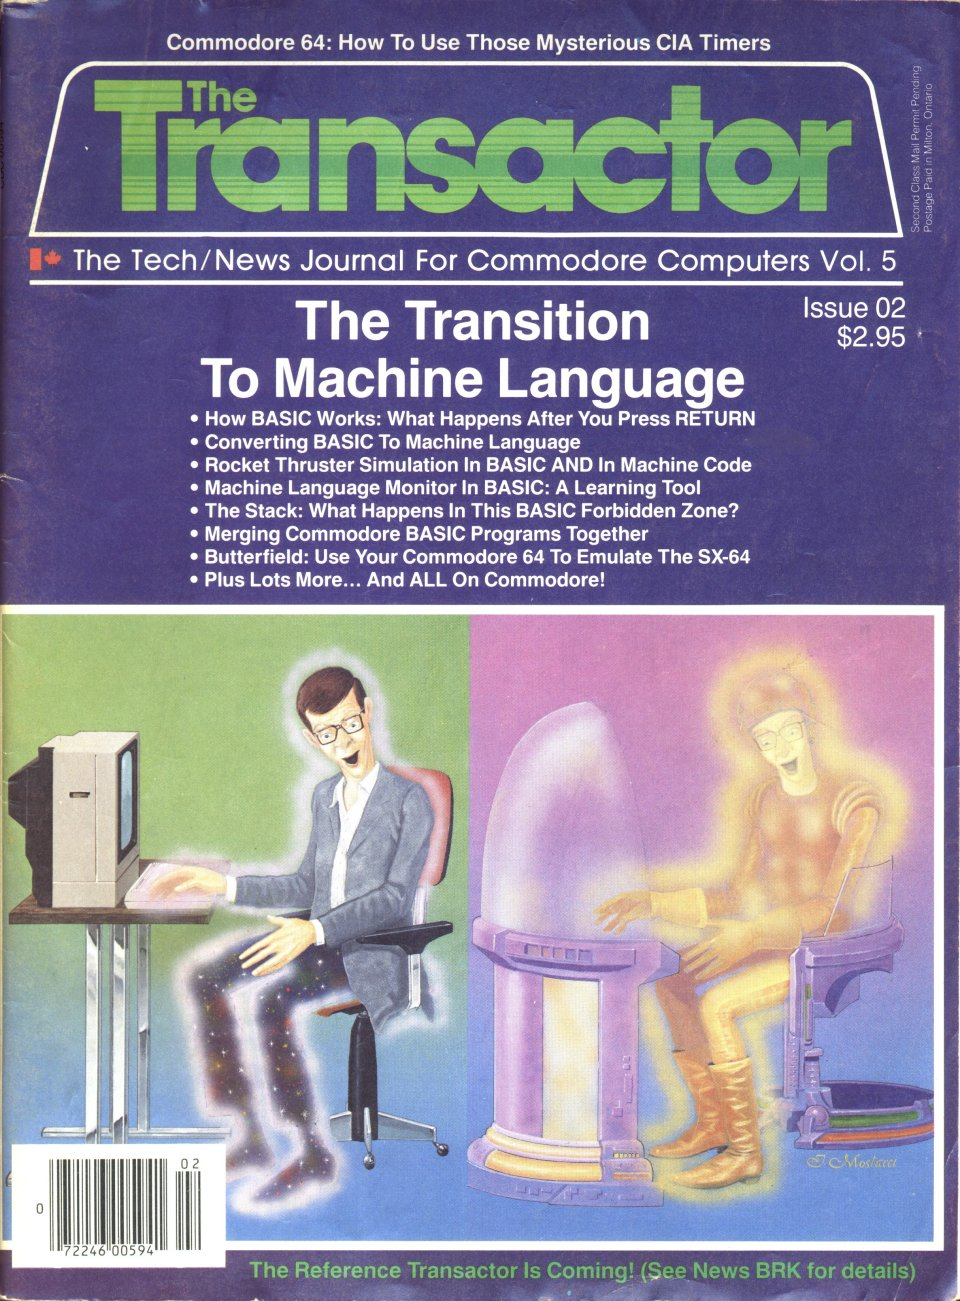 [Cover Page of The Transactor Volume 5, Issue 2: The Transition To Machine Language]